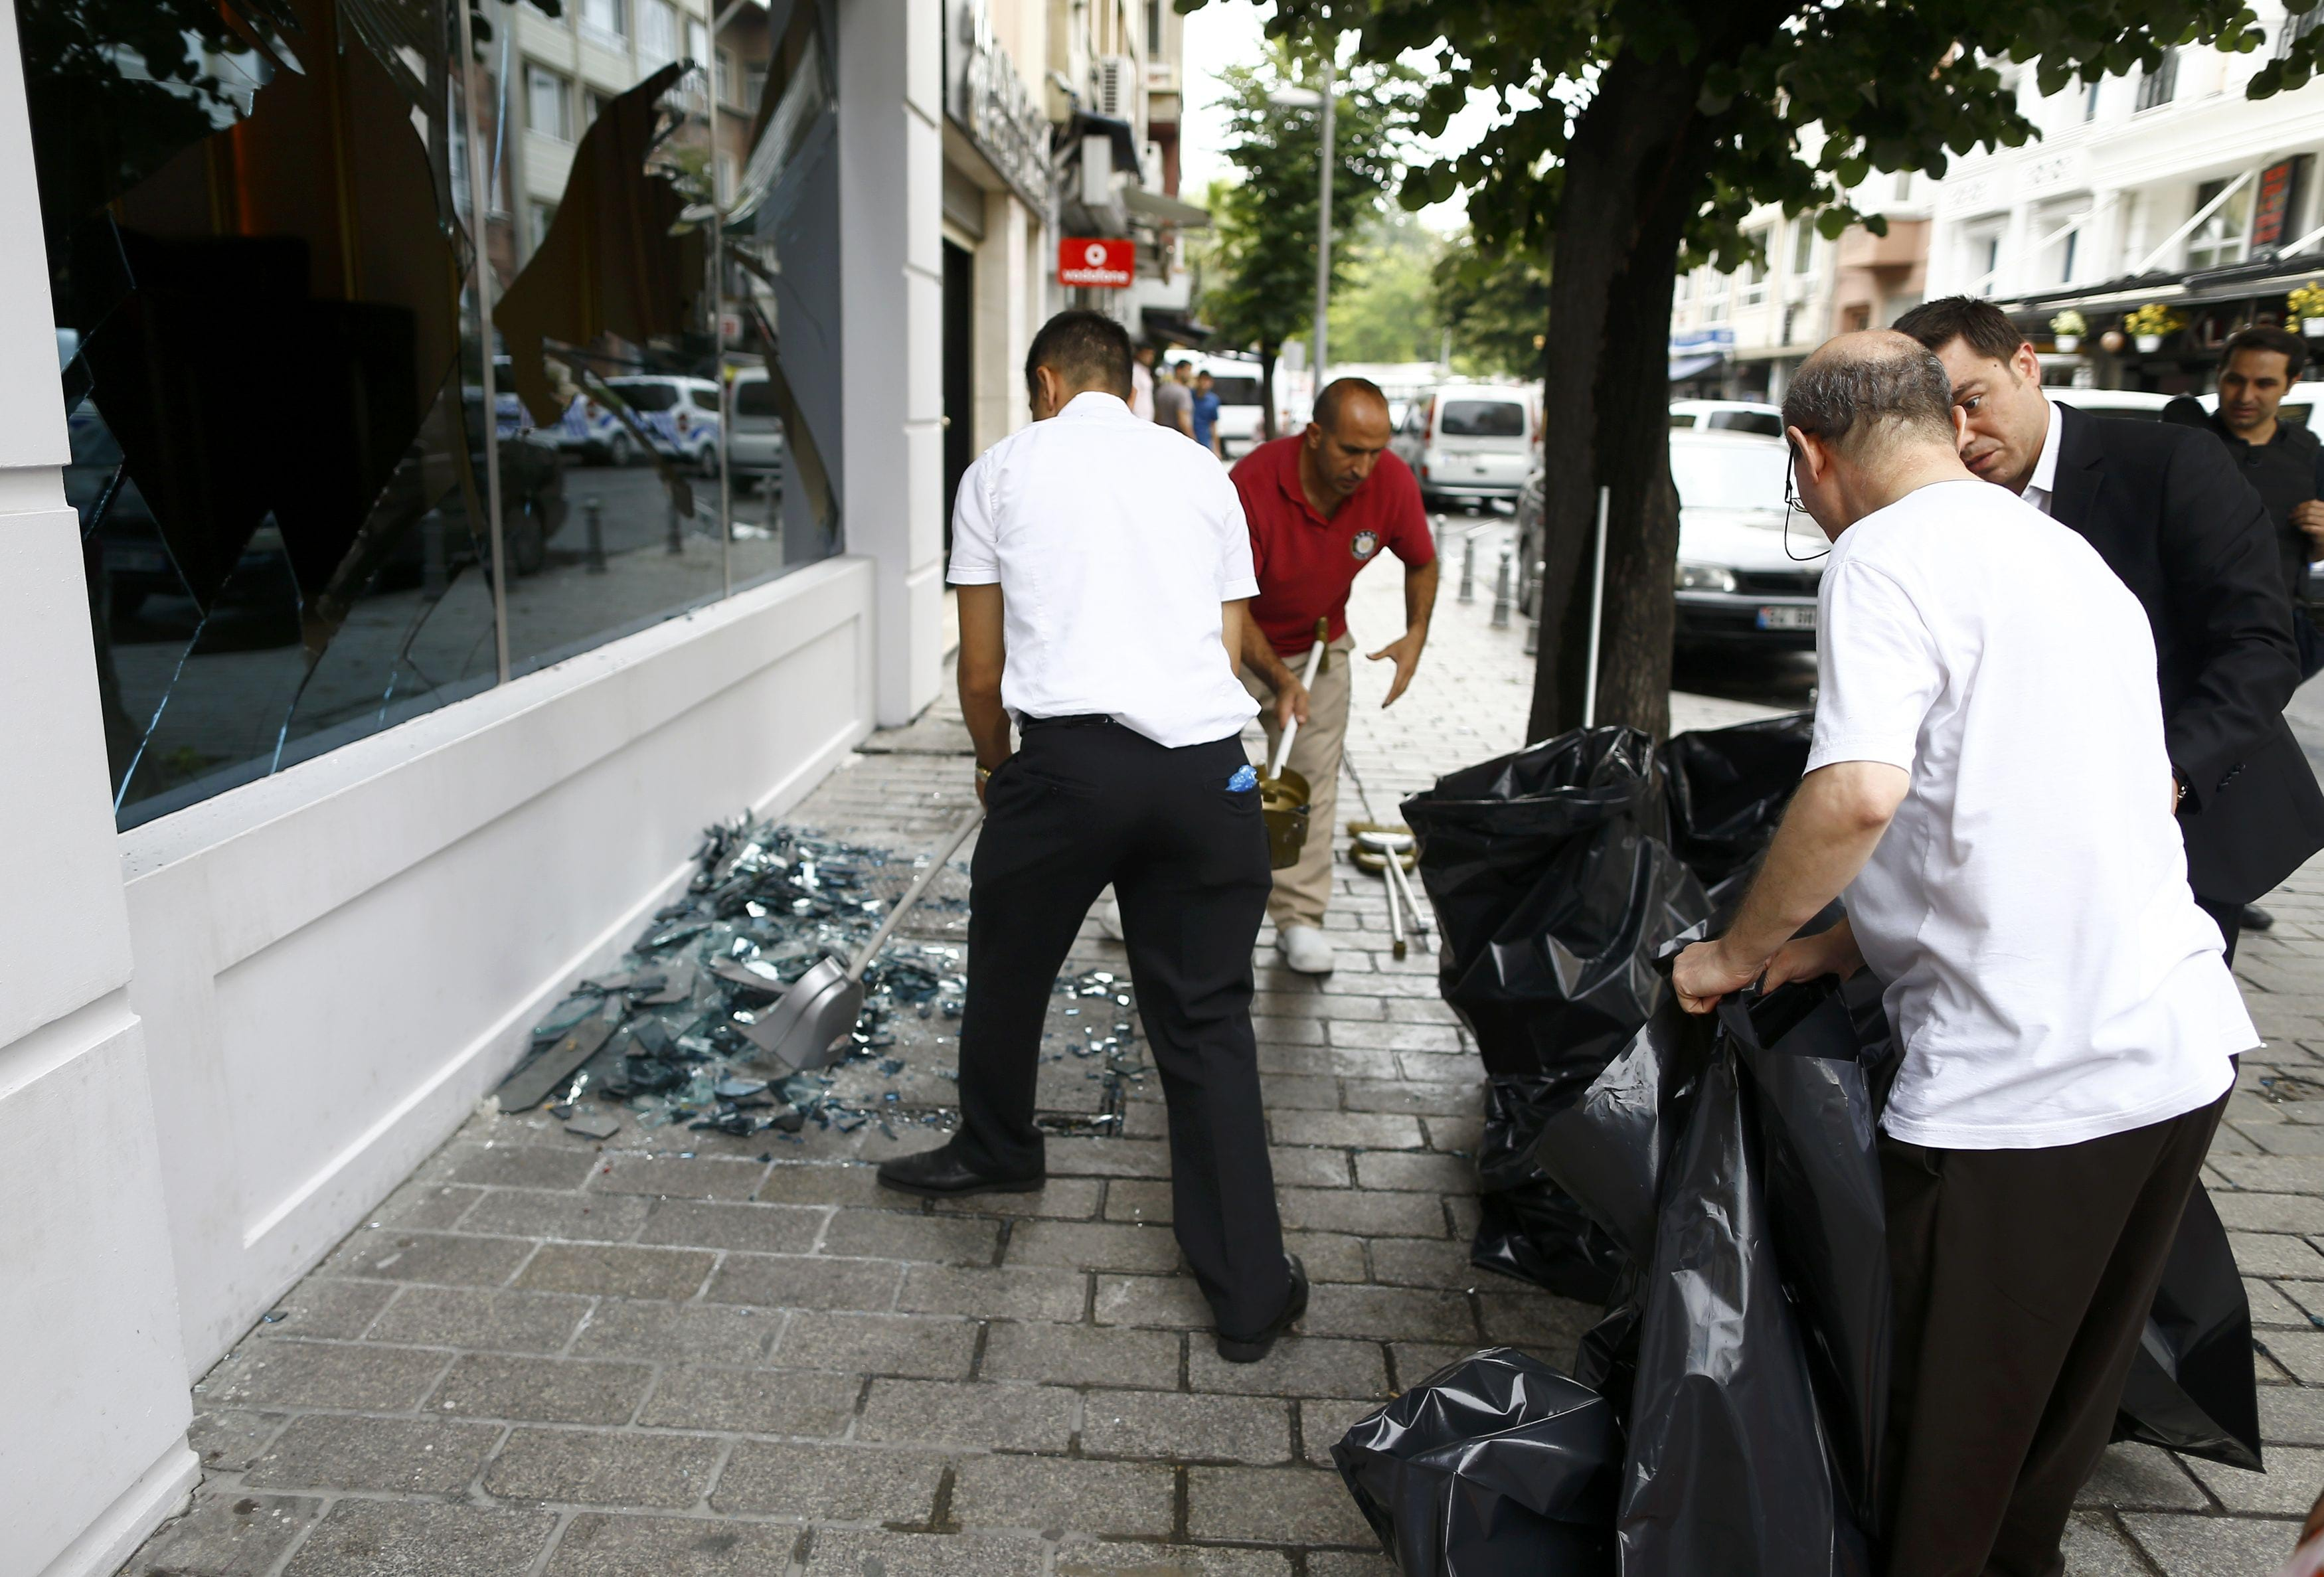 People remove glass of a destroyed shop window near the site where a Turkish police bus was targeted in a bomb attack in a central Istanbul district, Turkey, June 7, 2016. REUTERS/Osman Orsal